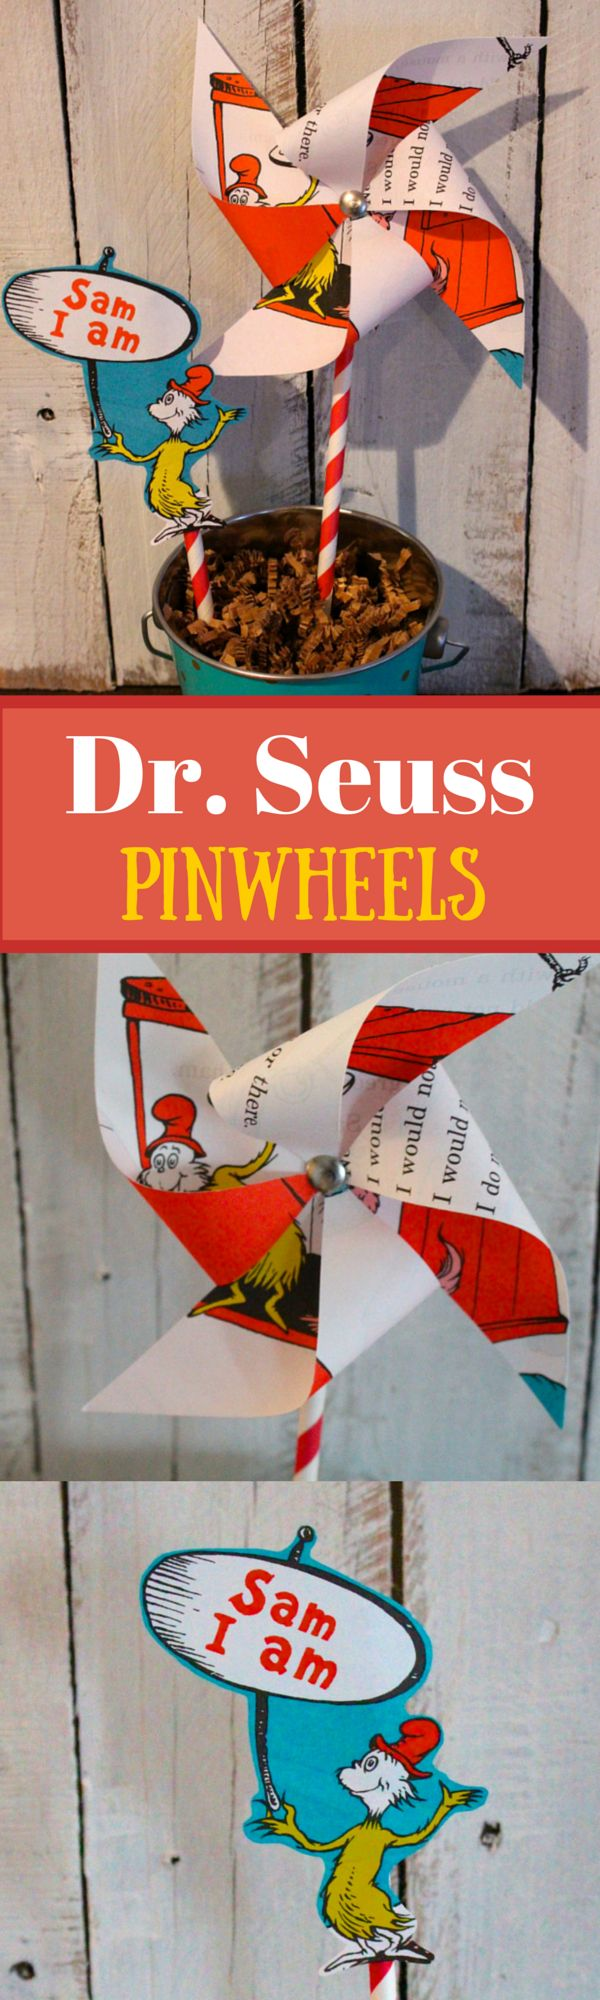 Dr Seuss Pinwheels from Green Eggs and Ham. Made in 15 minutes with pages from the book.